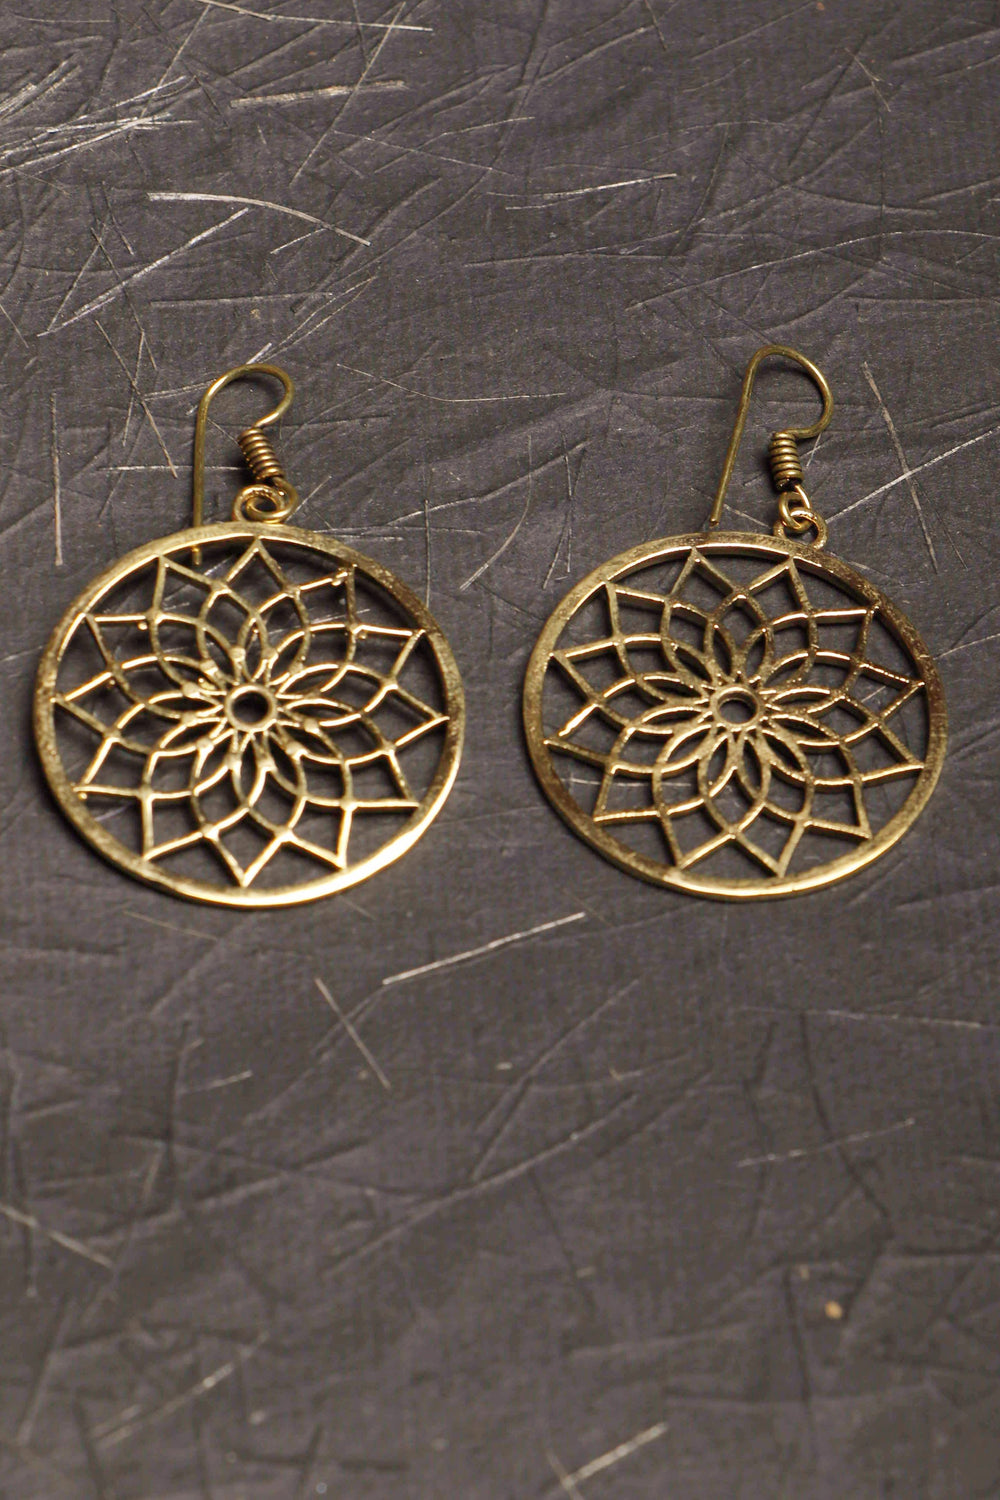 Pittalam series Phoolan IV handmade brass earrings